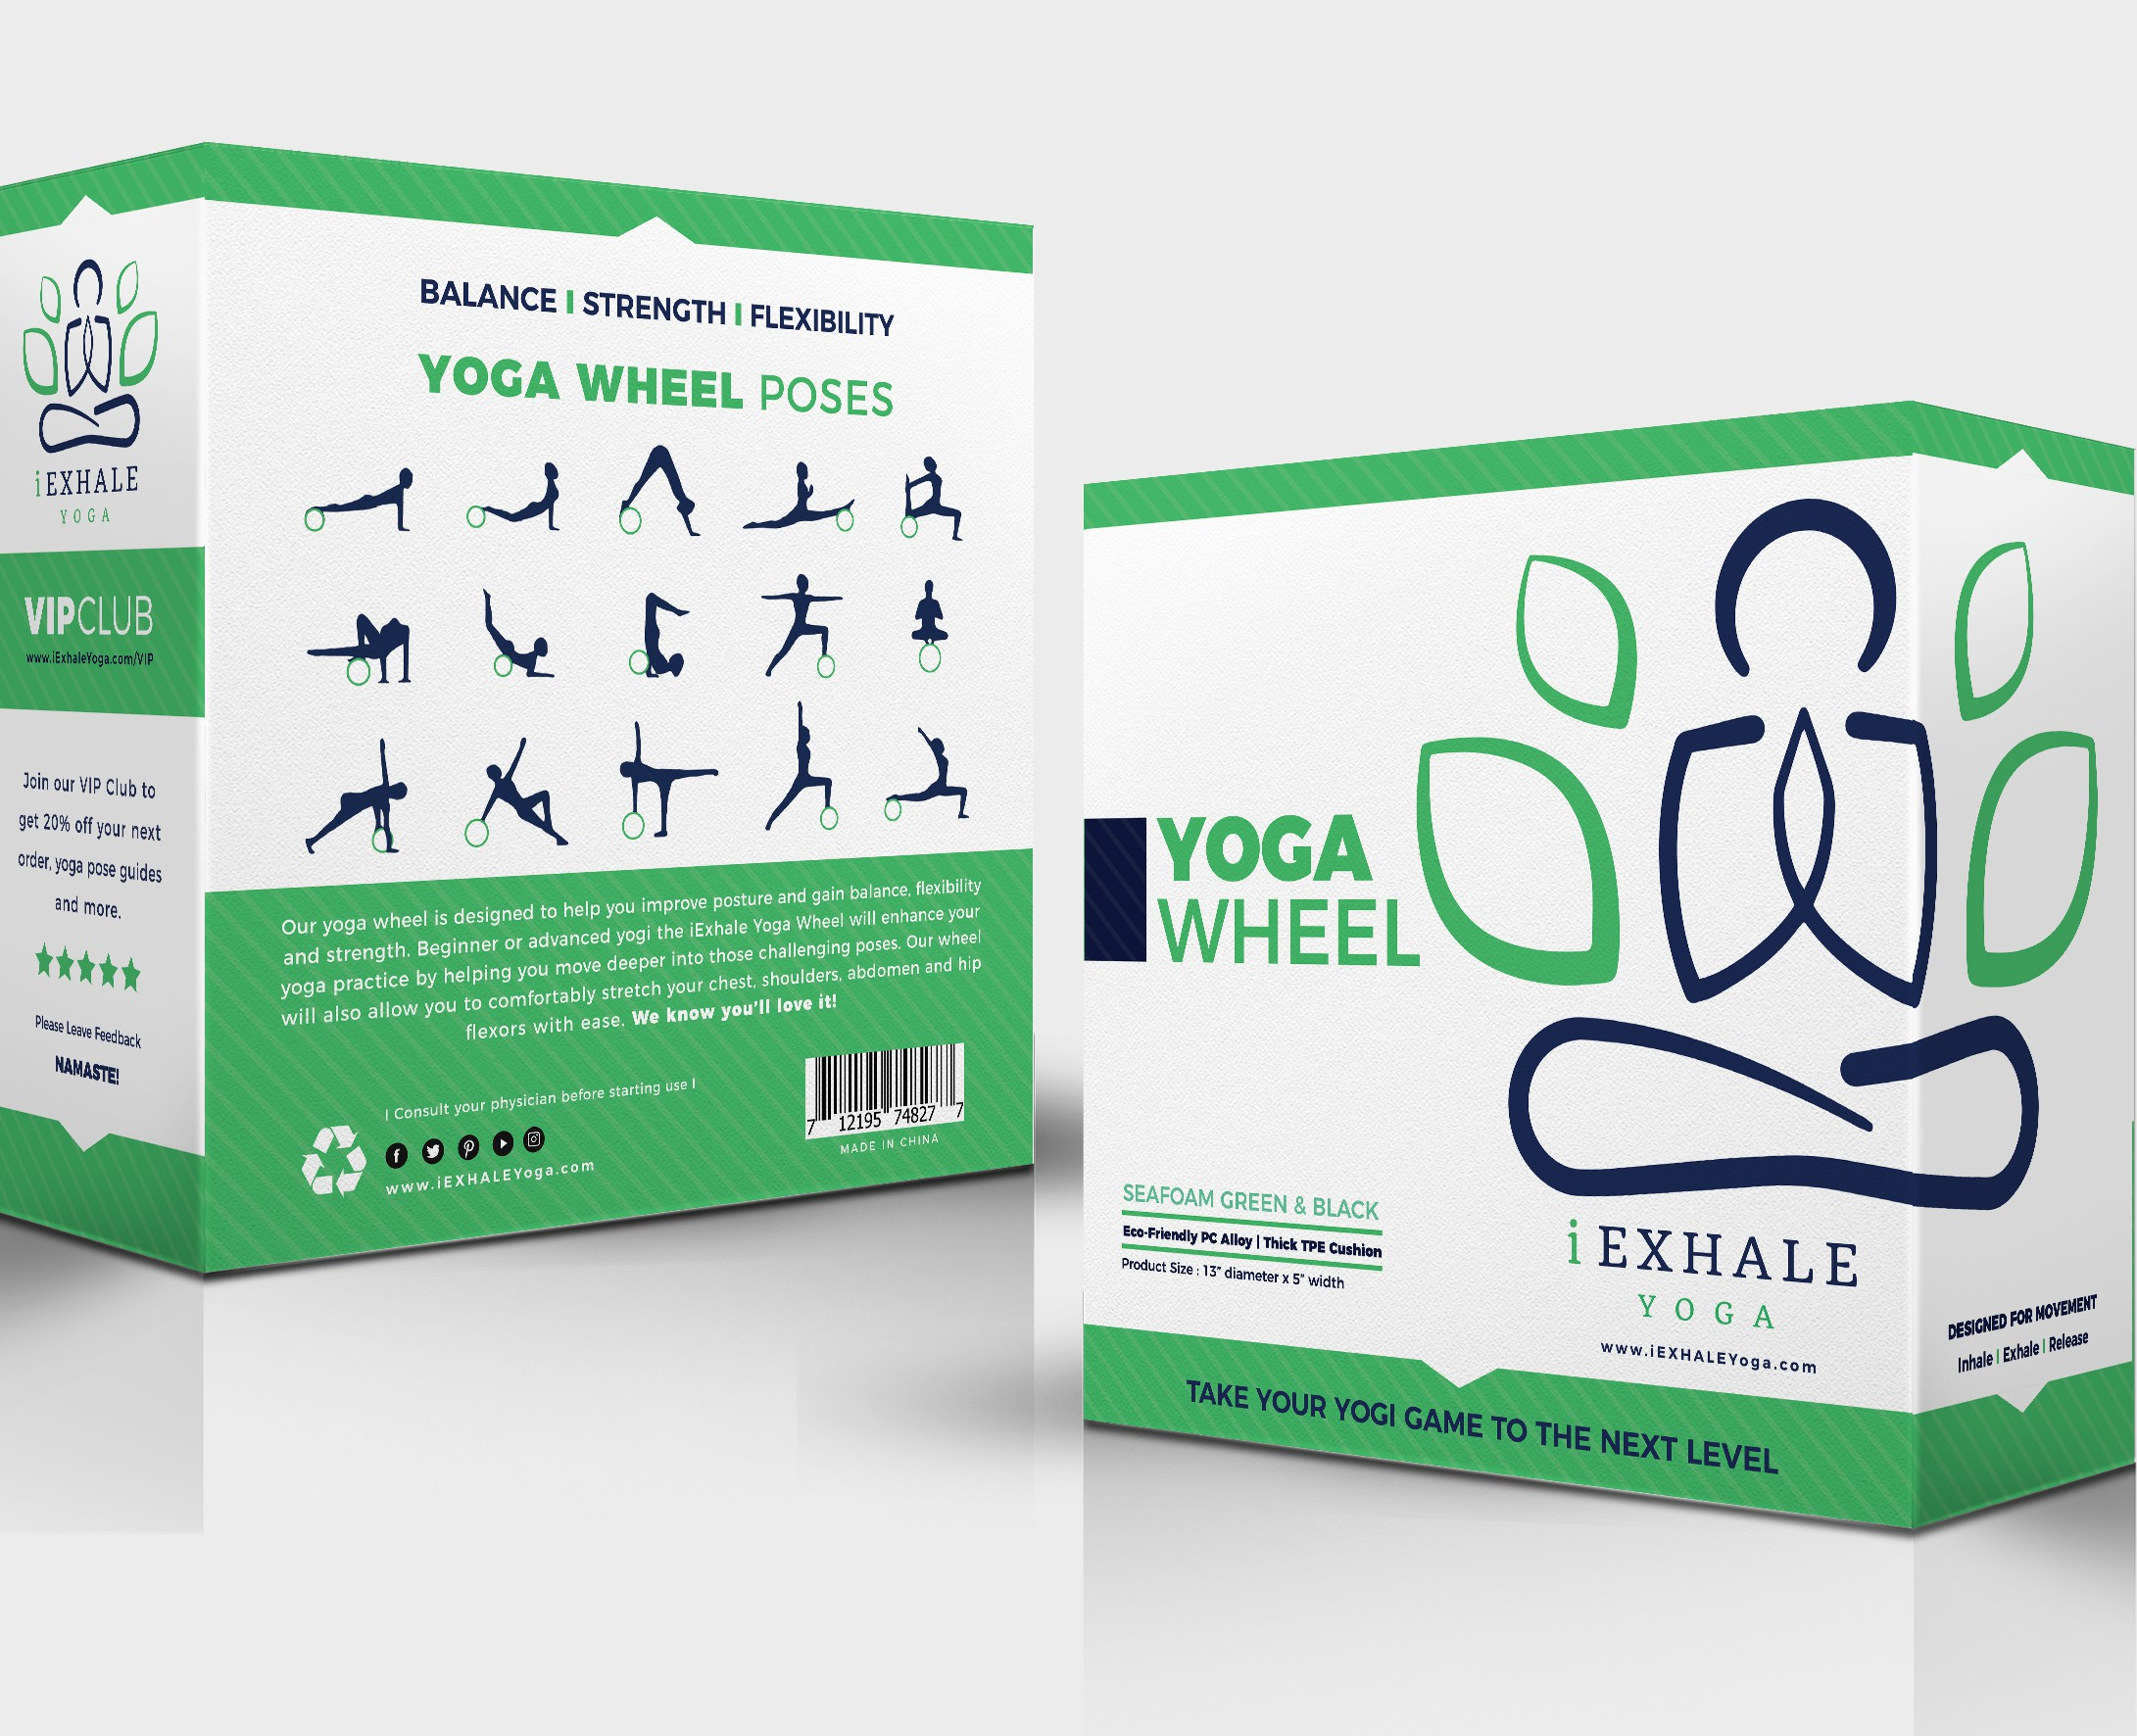 Duplicate packaging for iEXHALE Yoga Wheel